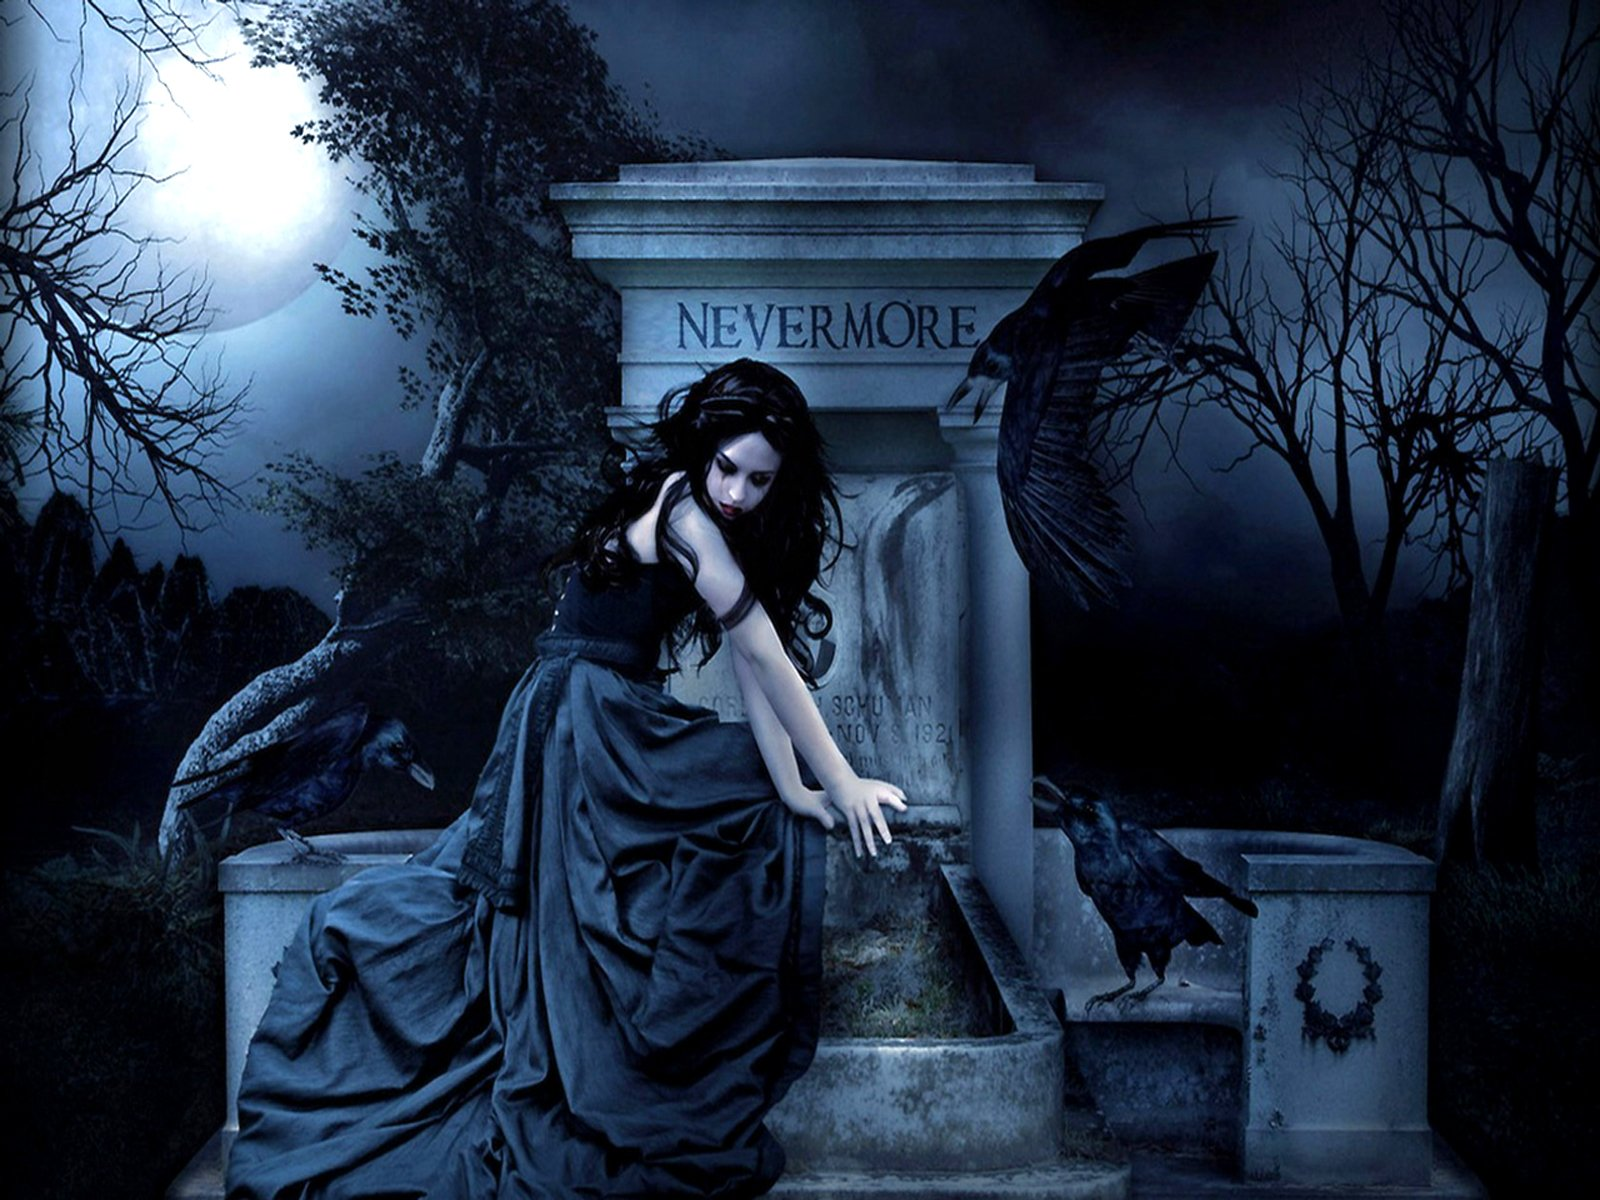 Gothic Wallpaper For iPhone – Get Yourself The Best wallpaper For Your Phone